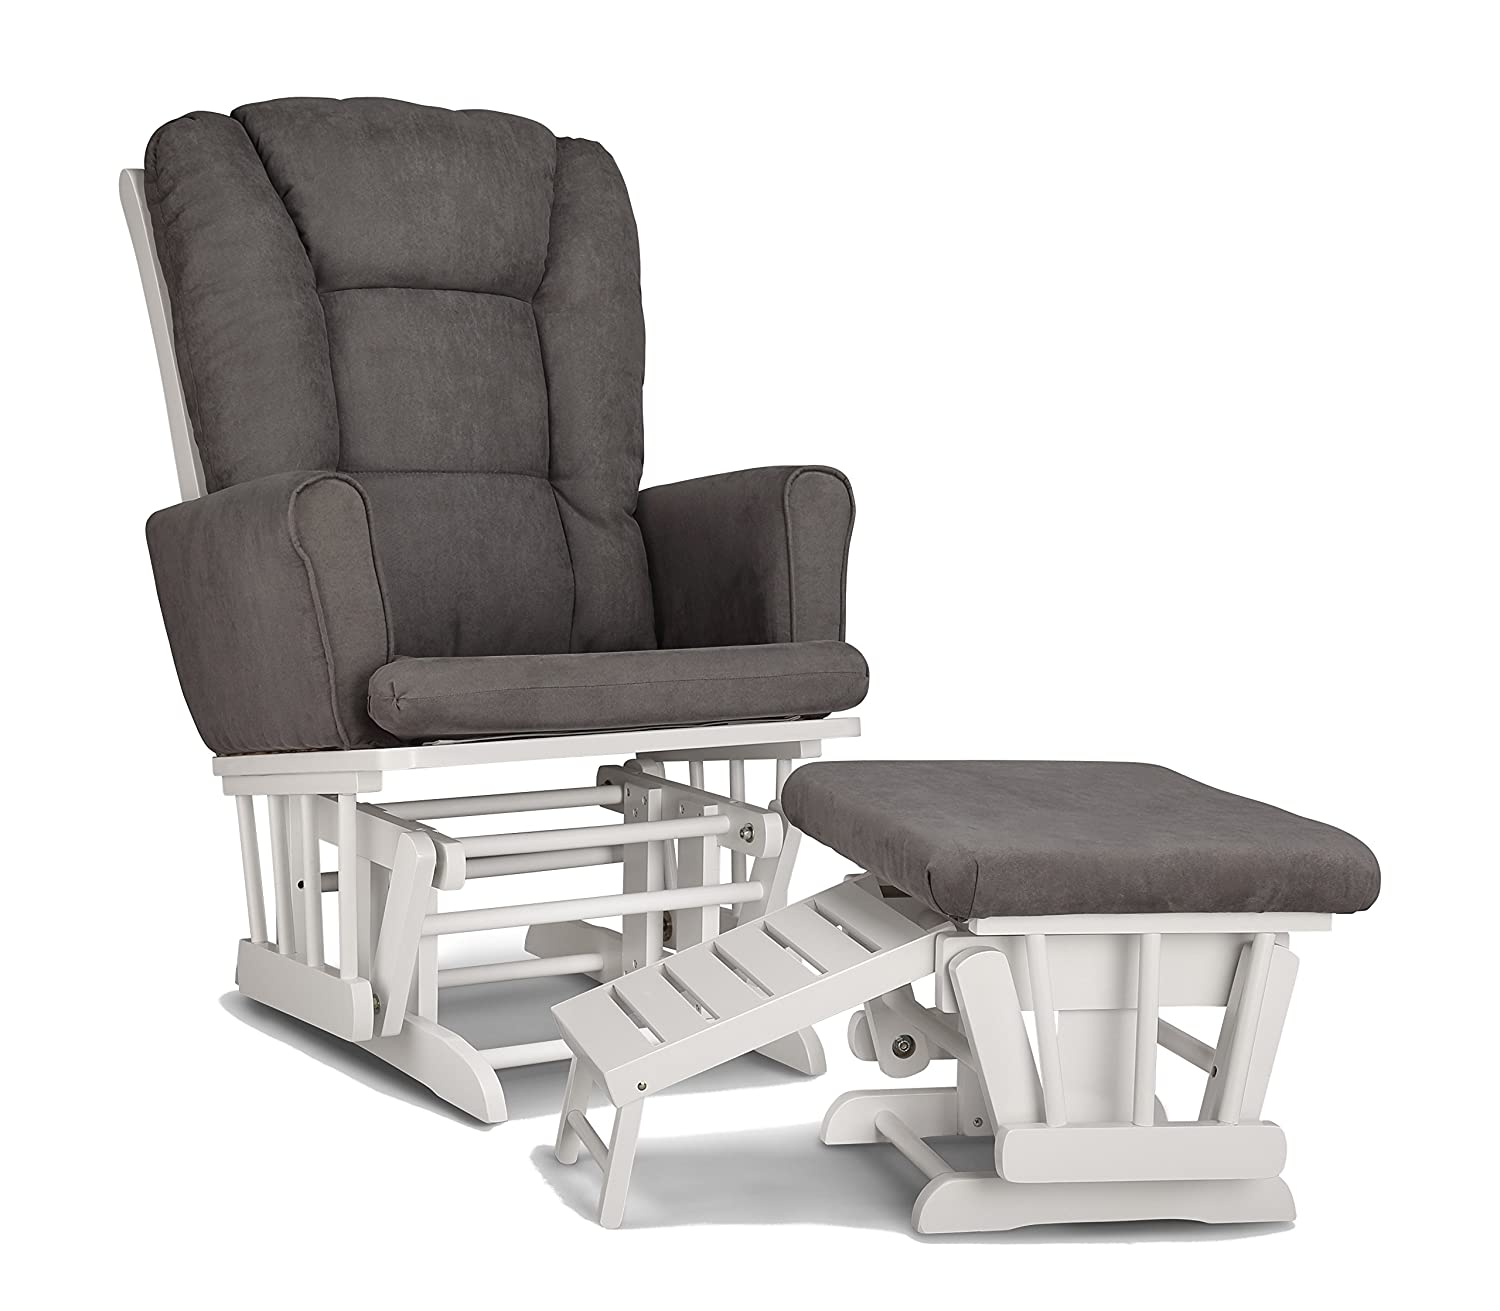 Graco Sterling Semi-Upholstered Glider and Nursing Ottoman Image